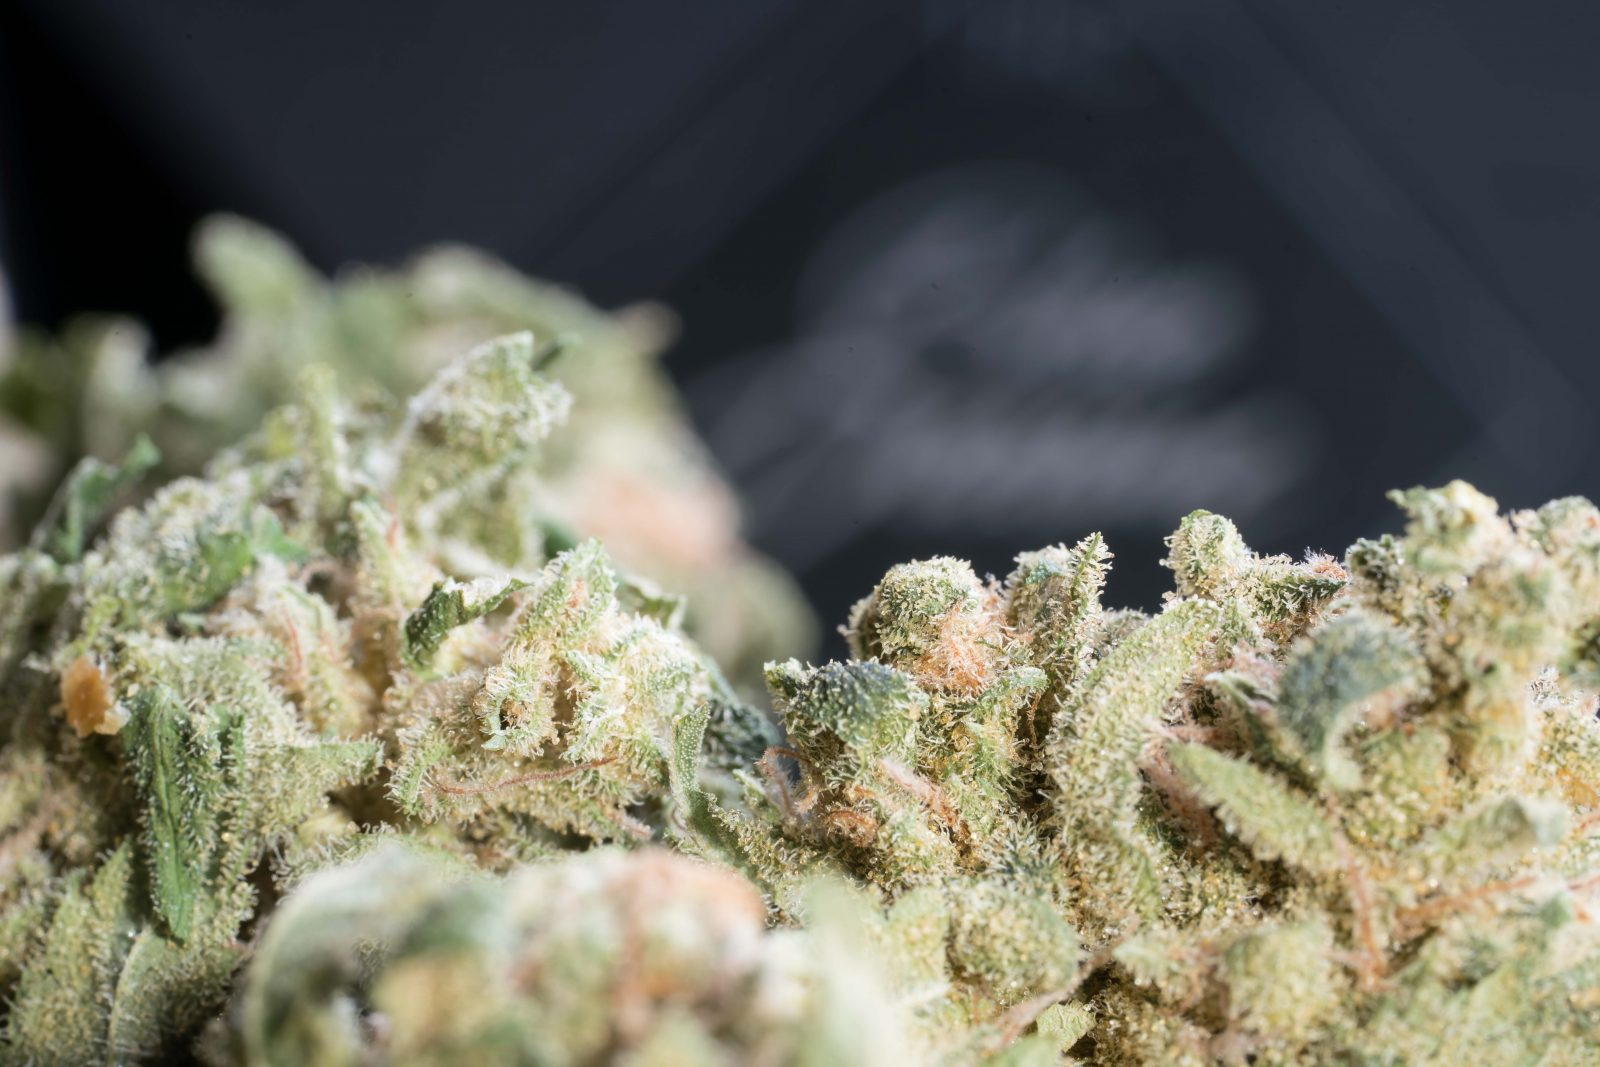 Blue Dream by Tantalus Labs